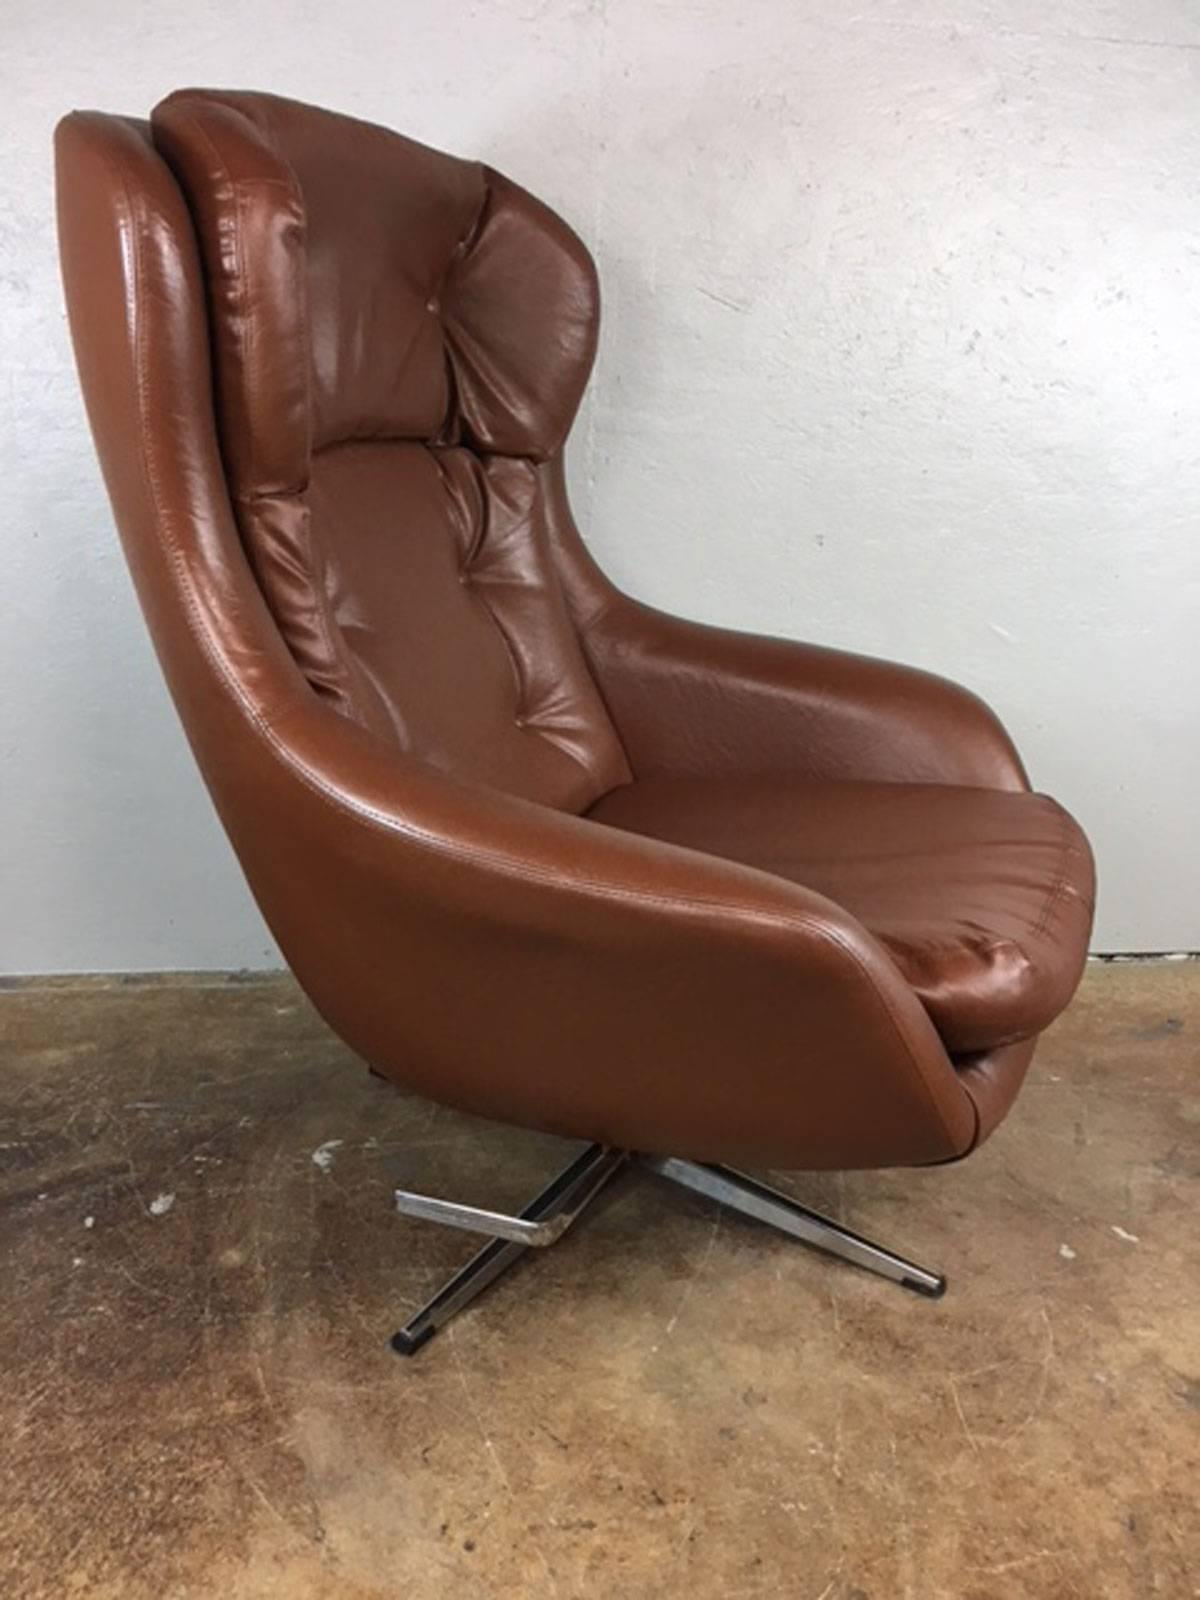 1960s Brown Leather Lounge Chair And Ottoman By Selling. All Original. No  Rips,